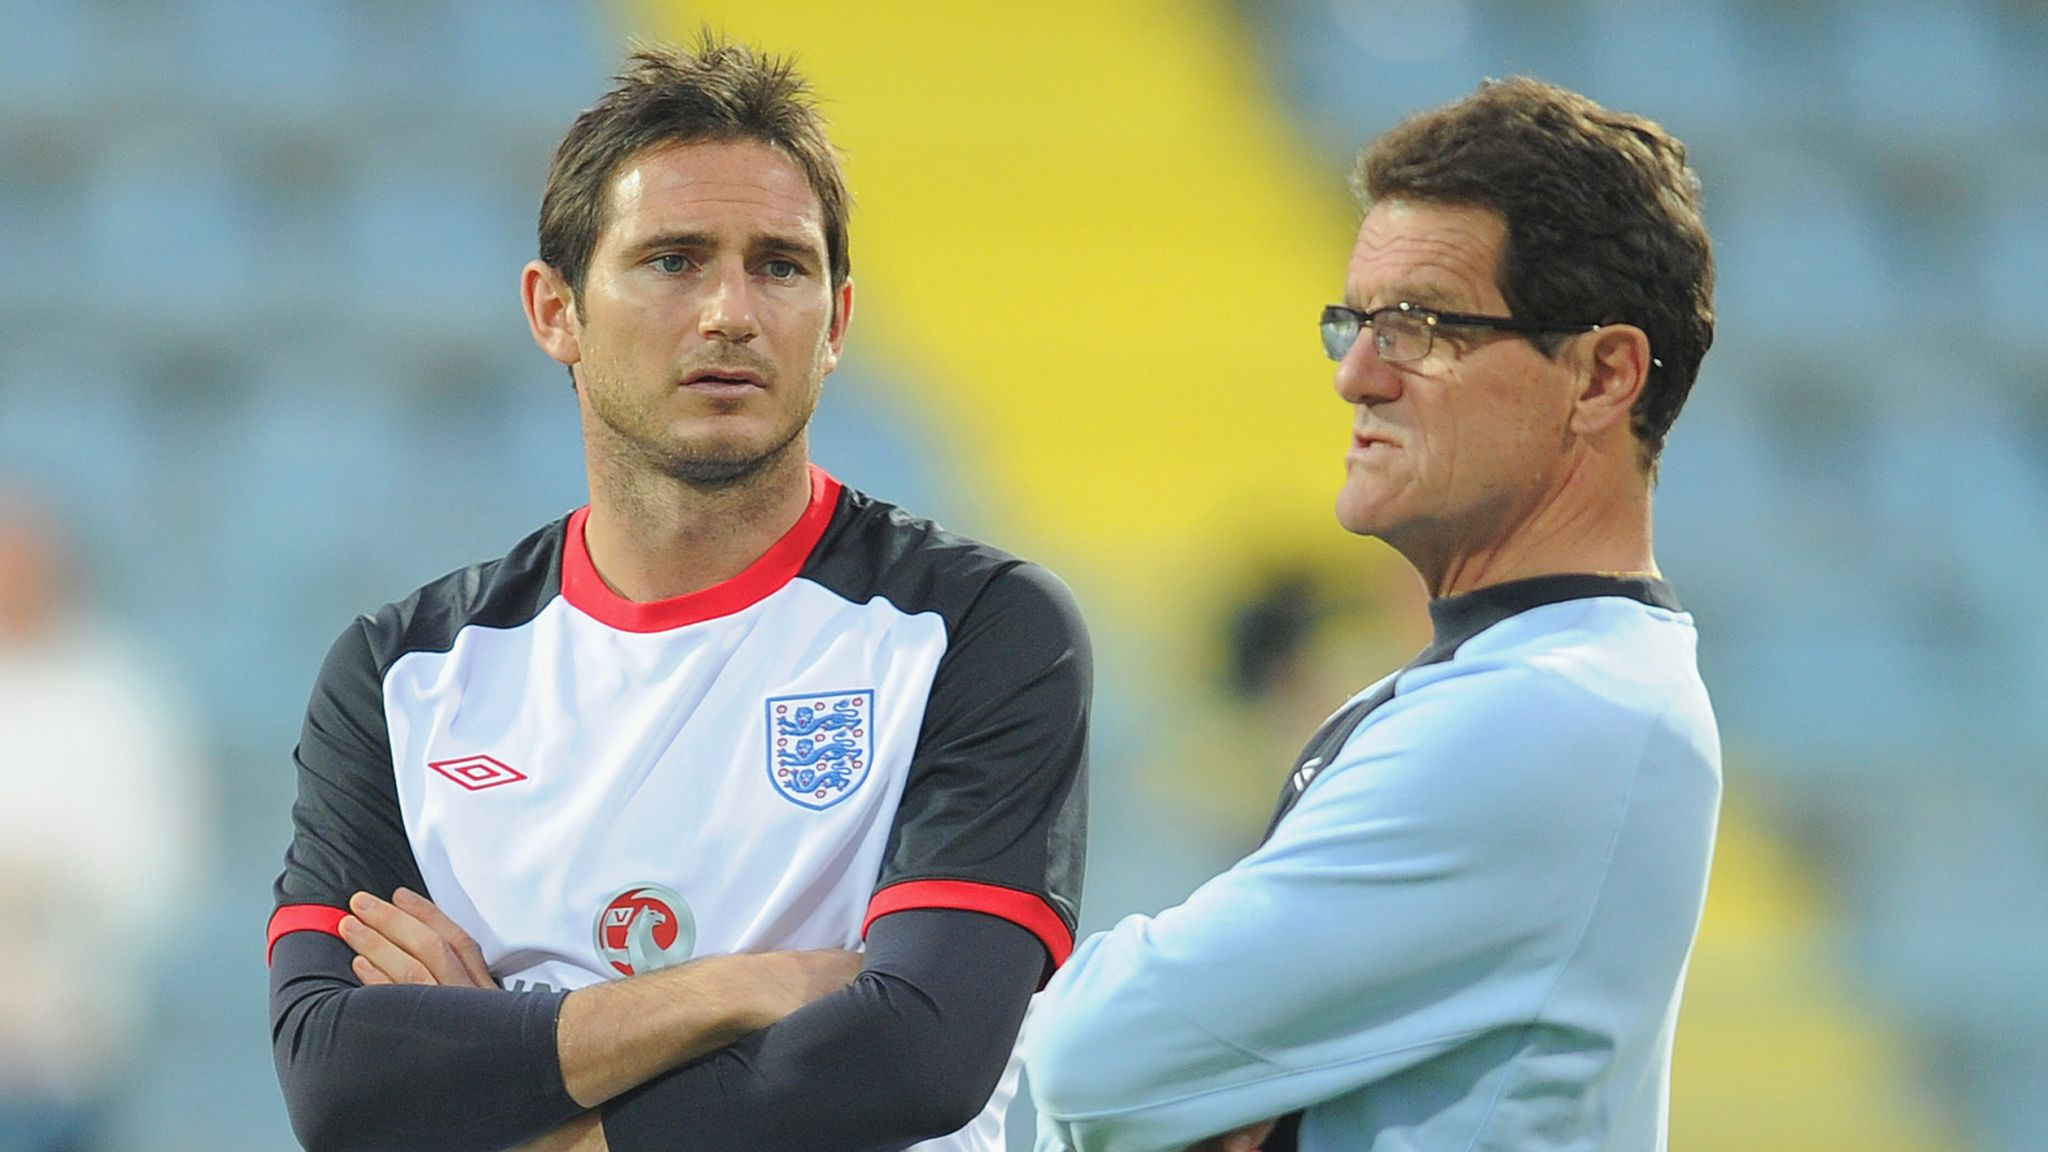 Frank Lampard to manage England one day, according to Fabio Capello